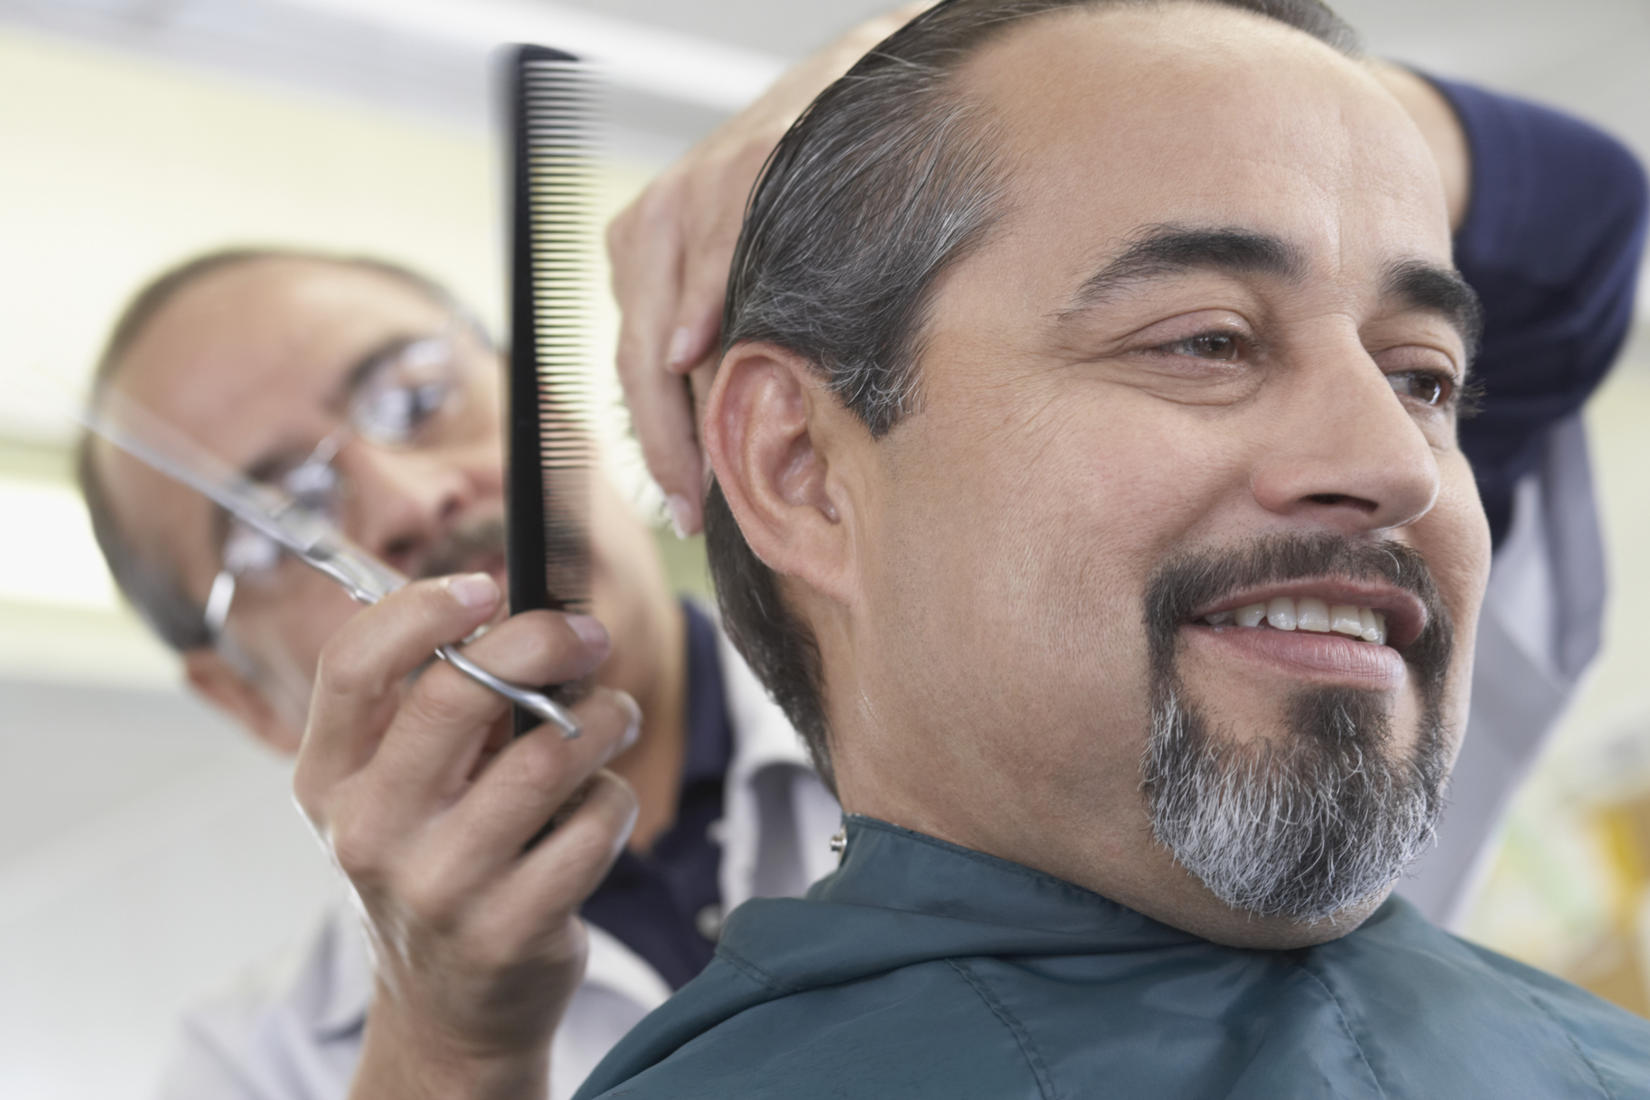 Barbers Coupons Deals Near Hanover Pa Localsaver